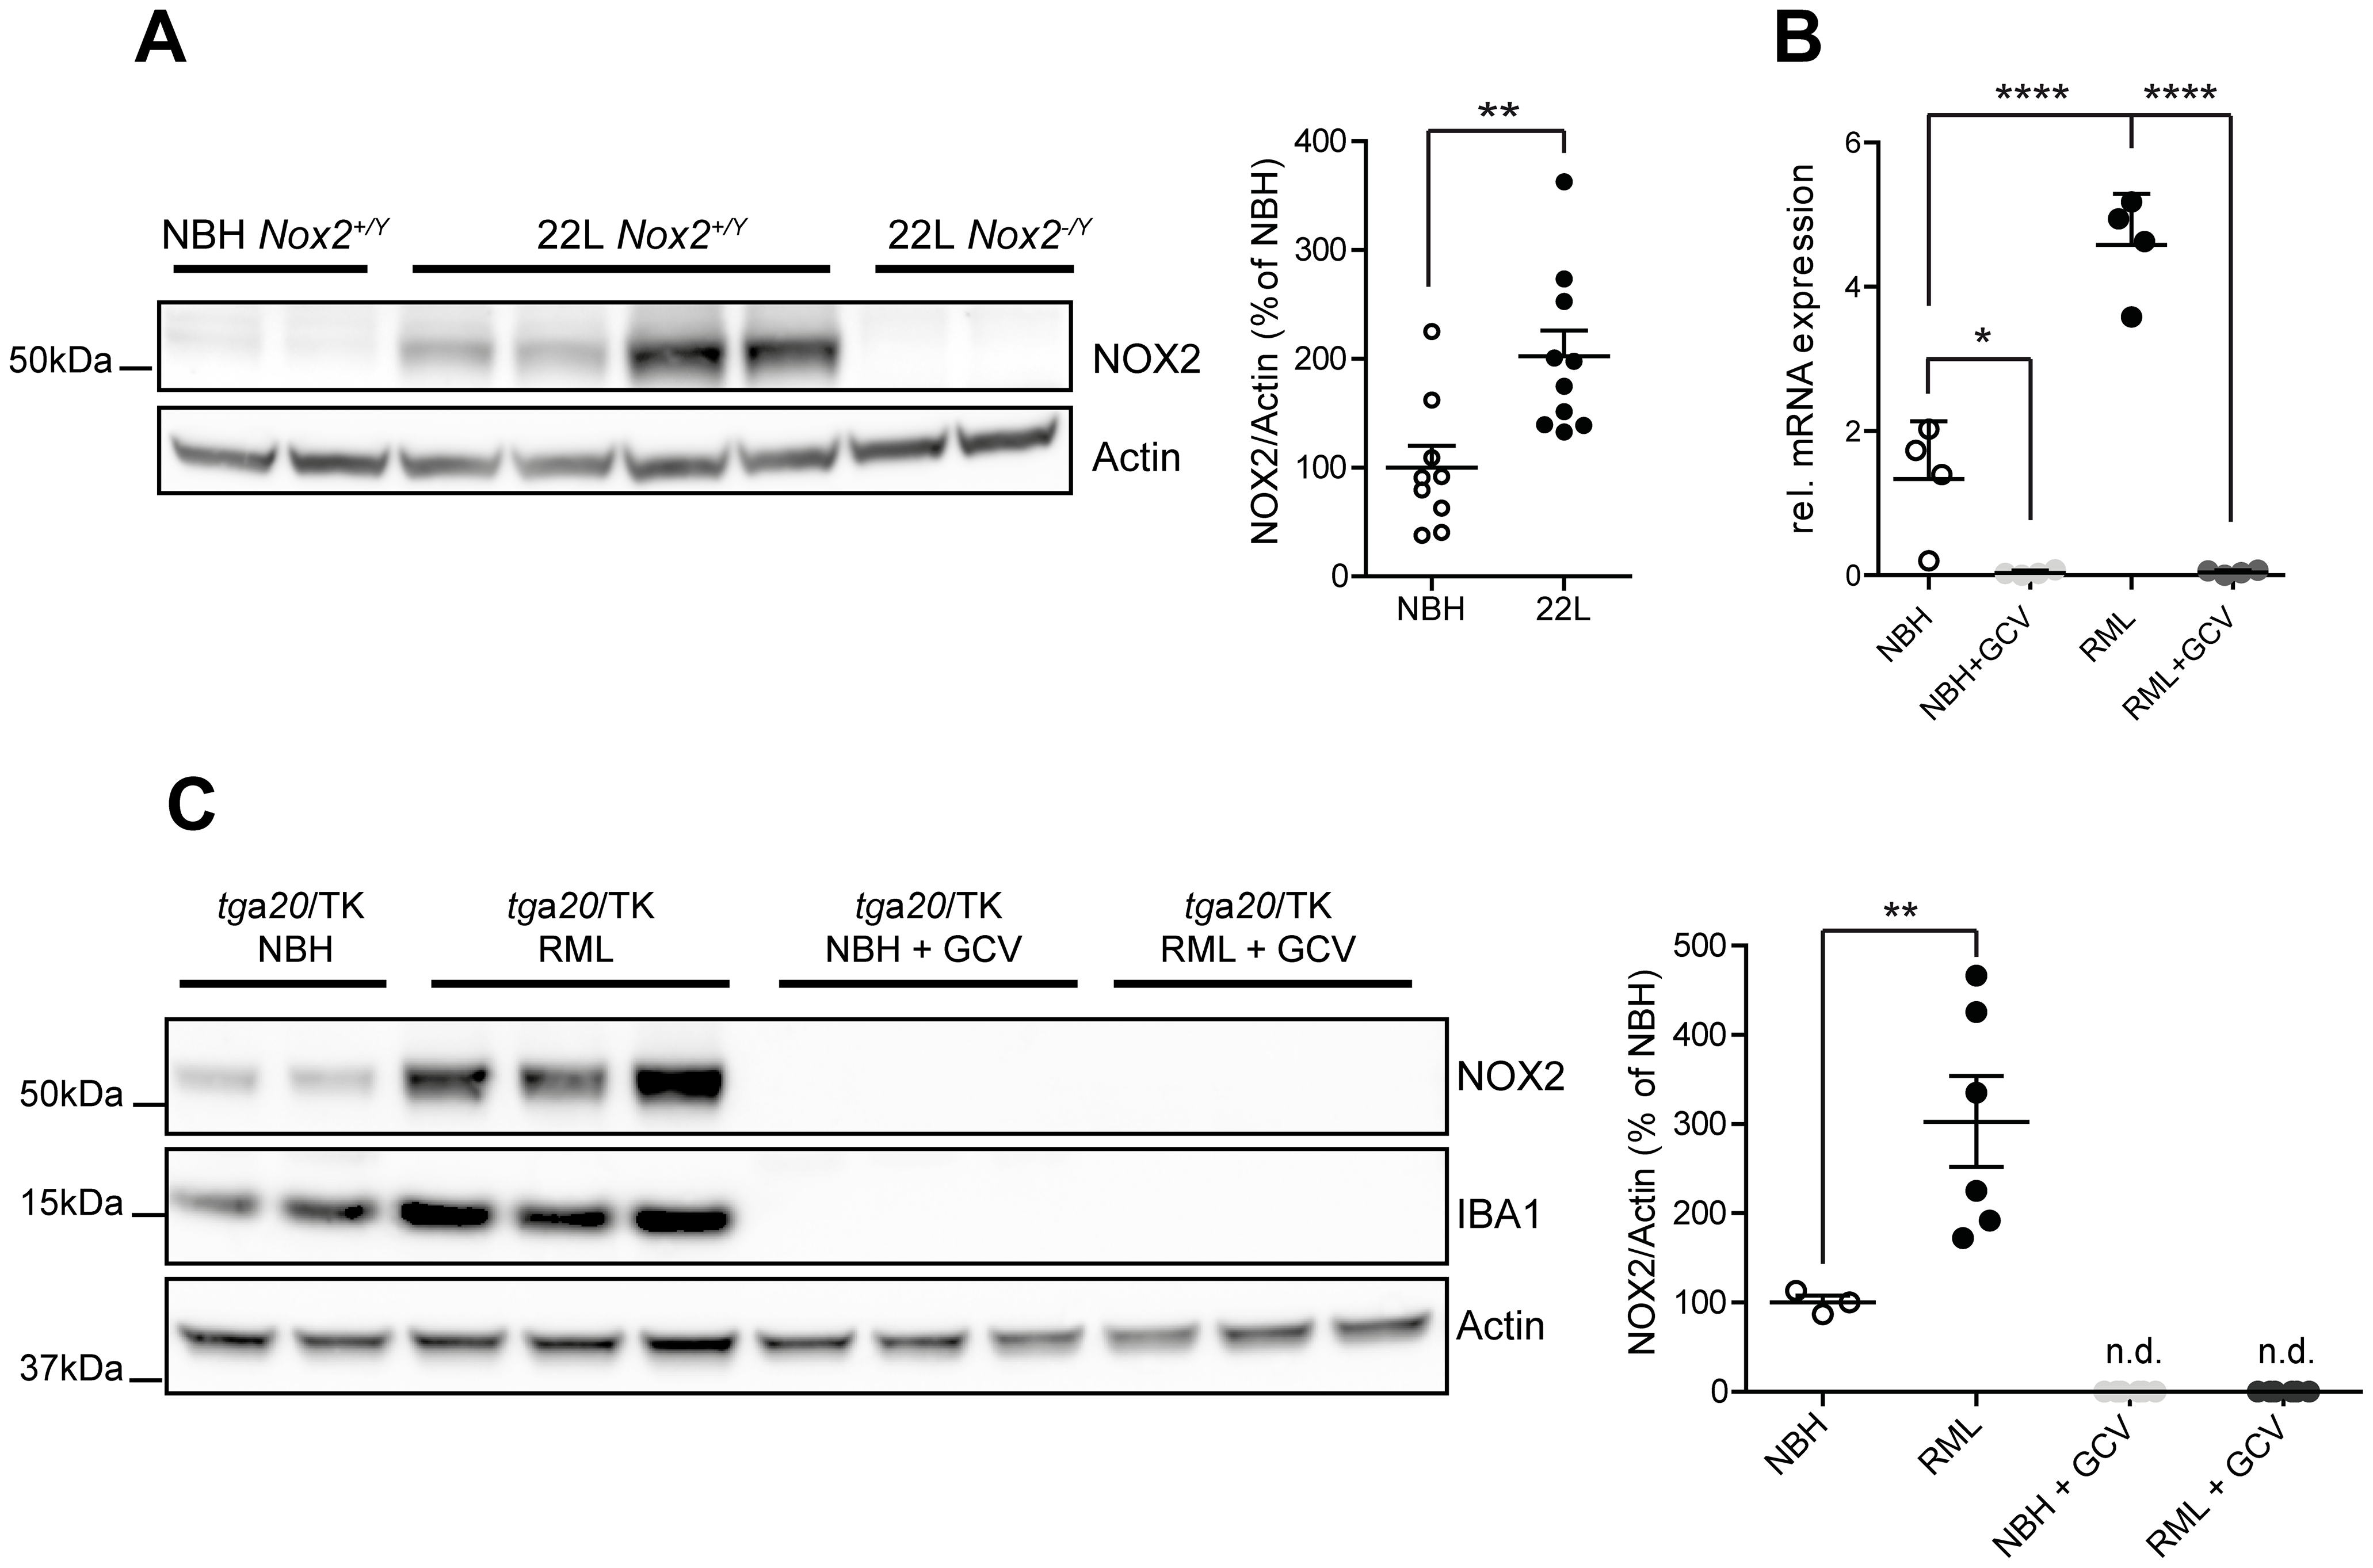 Analysis of NOX2 expression and cellular localization in mice.